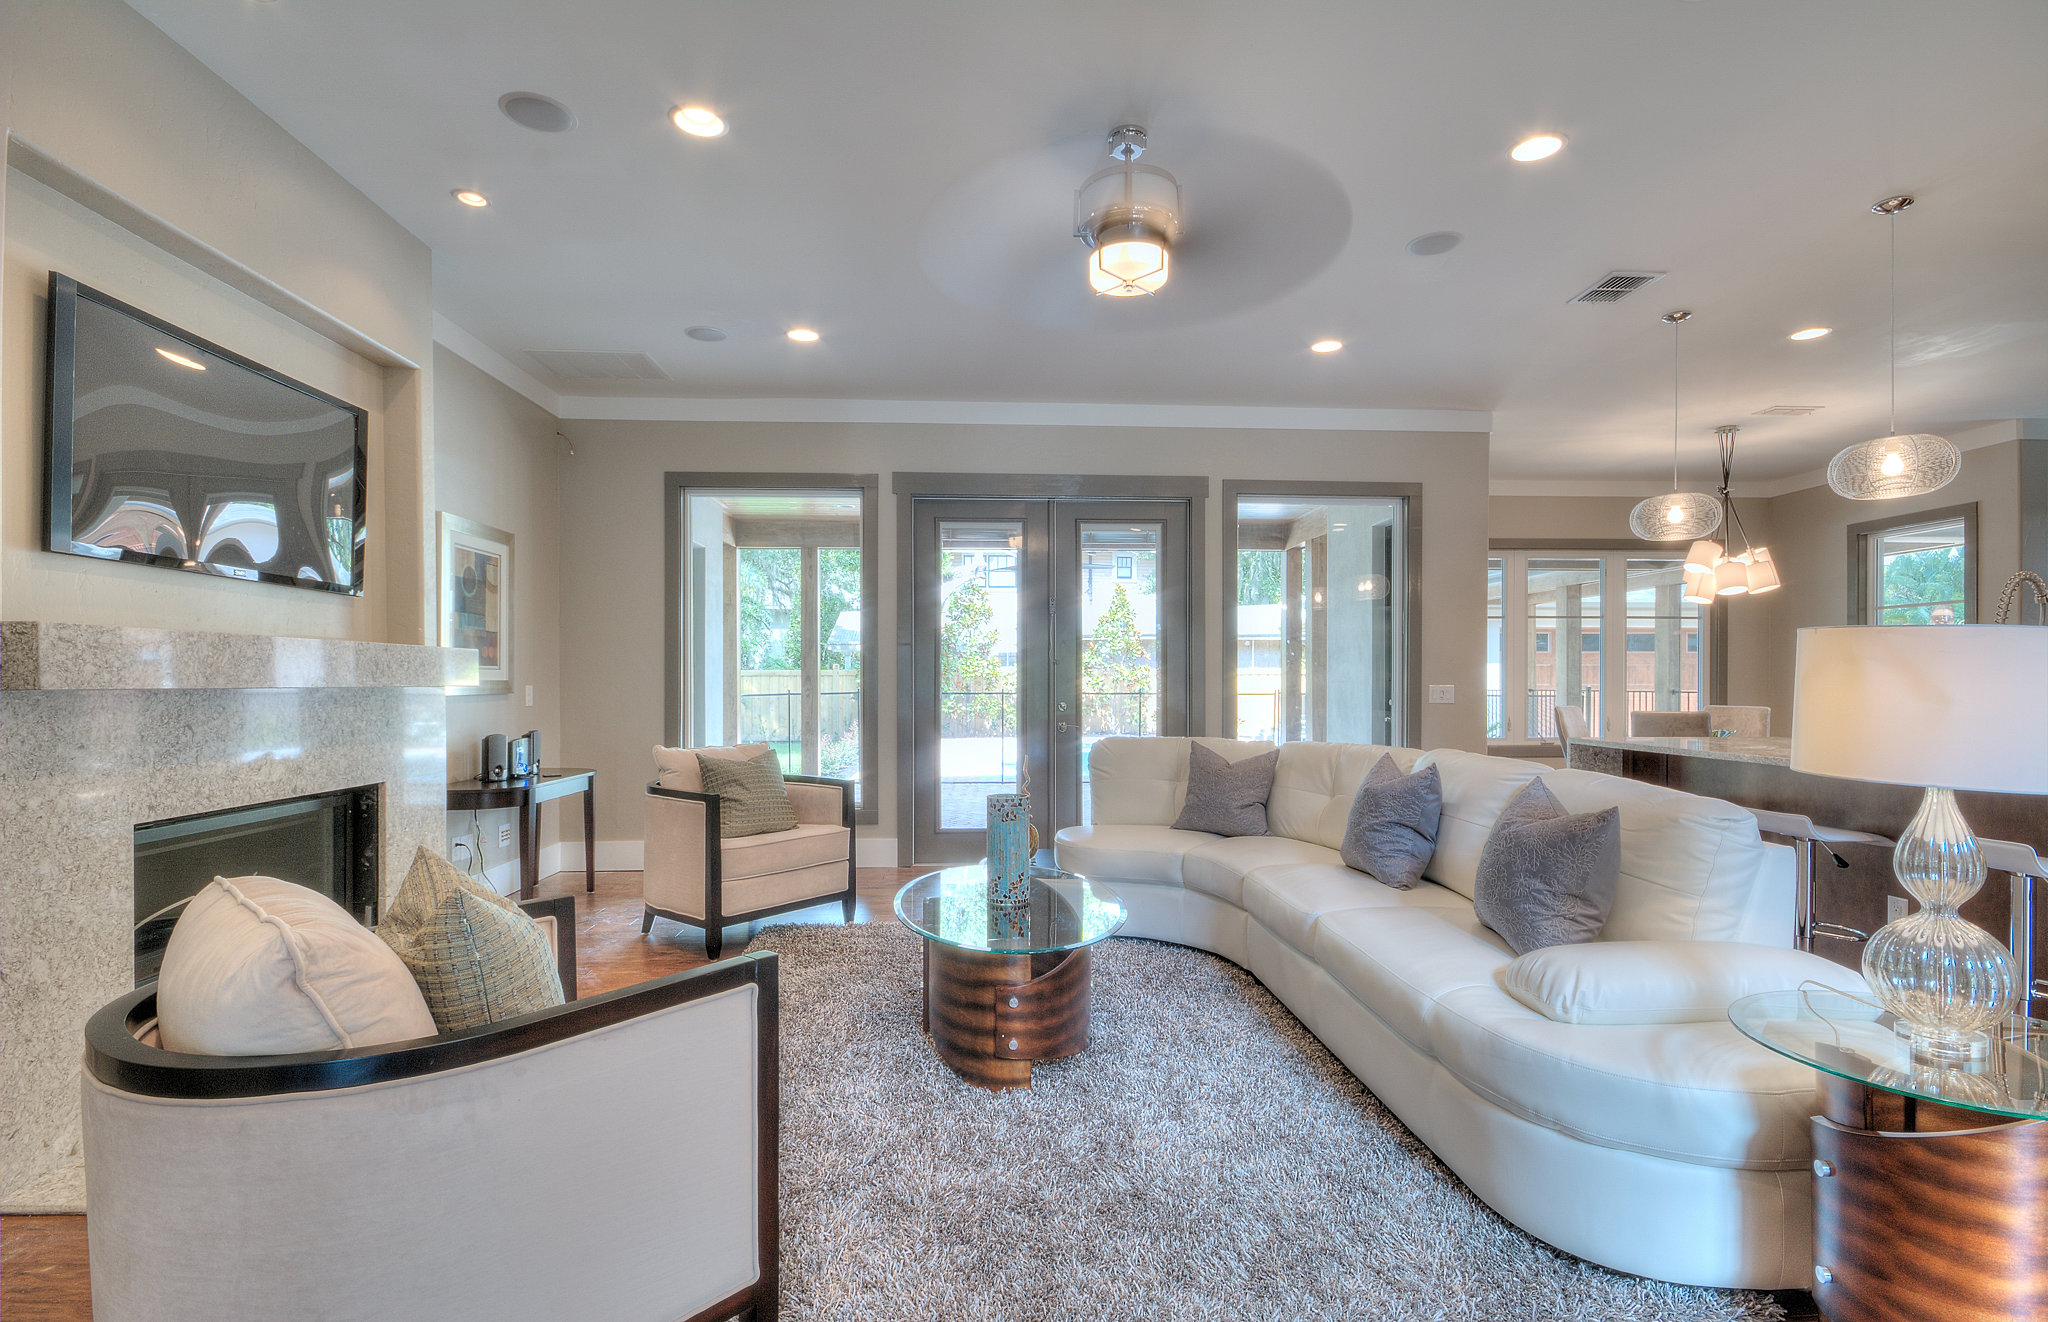 Living Room Staging Home Staging Orlando Fl Affordable Key Room Packages For Over 10 Years